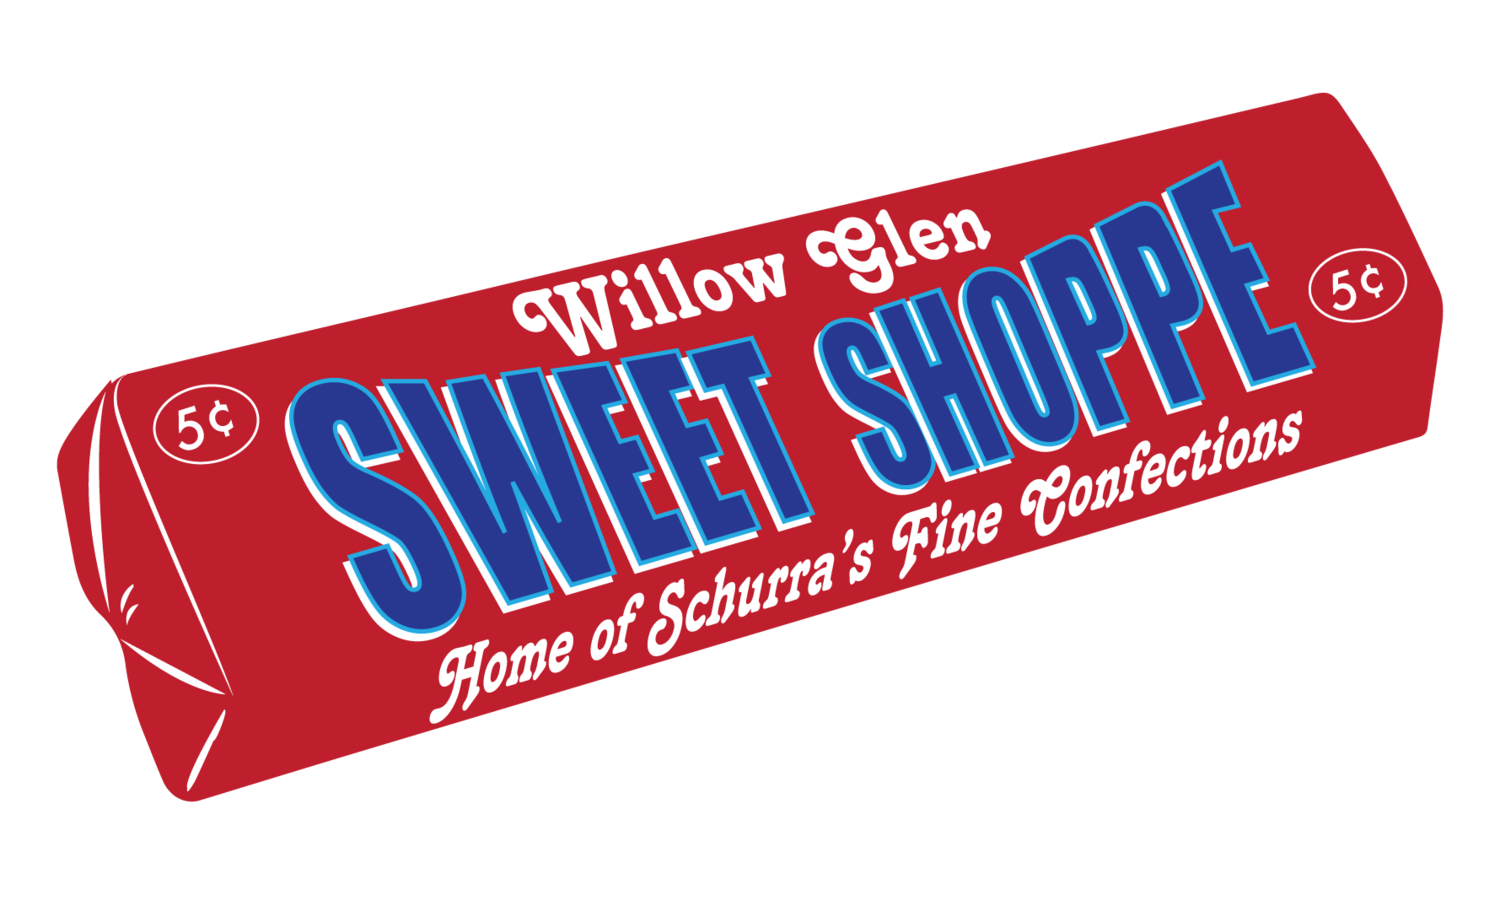 Willow Glen Sweet Shoppe